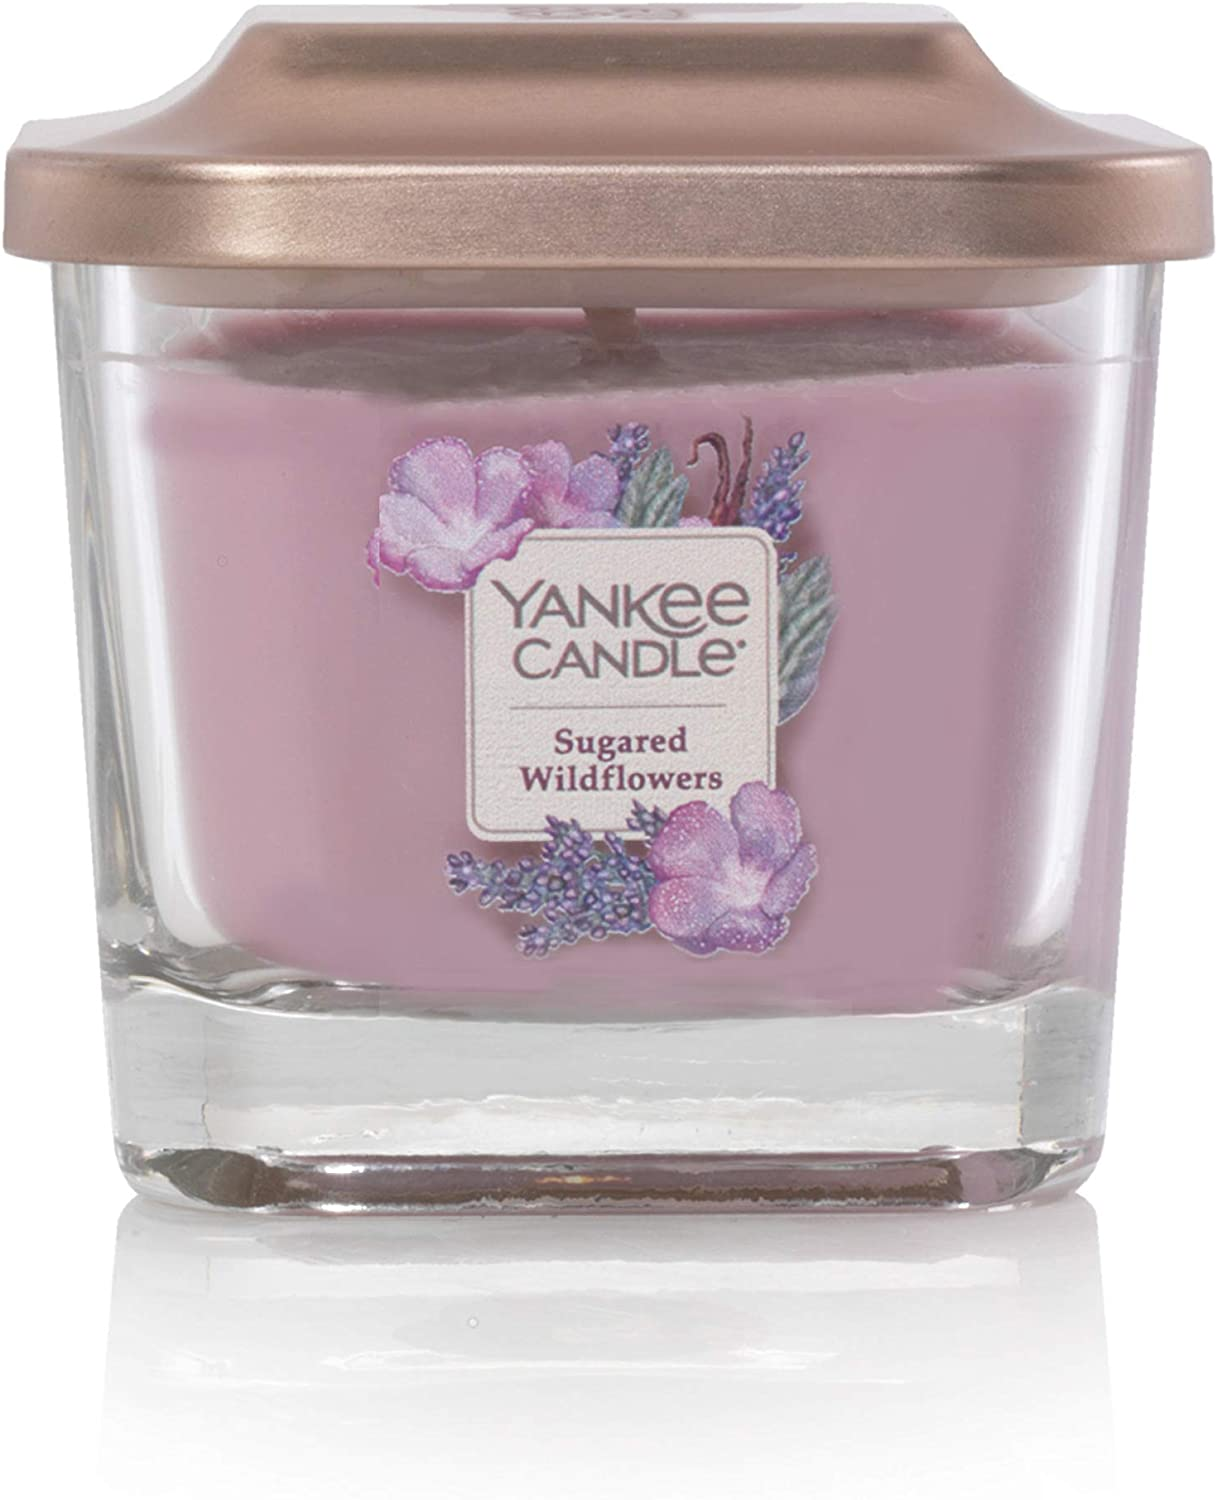 Yankee Candle Elevation Collection with Platform Lid Sugared Wildflower Scented Candle, Small 1-Wick, 28 Hour Burn Time